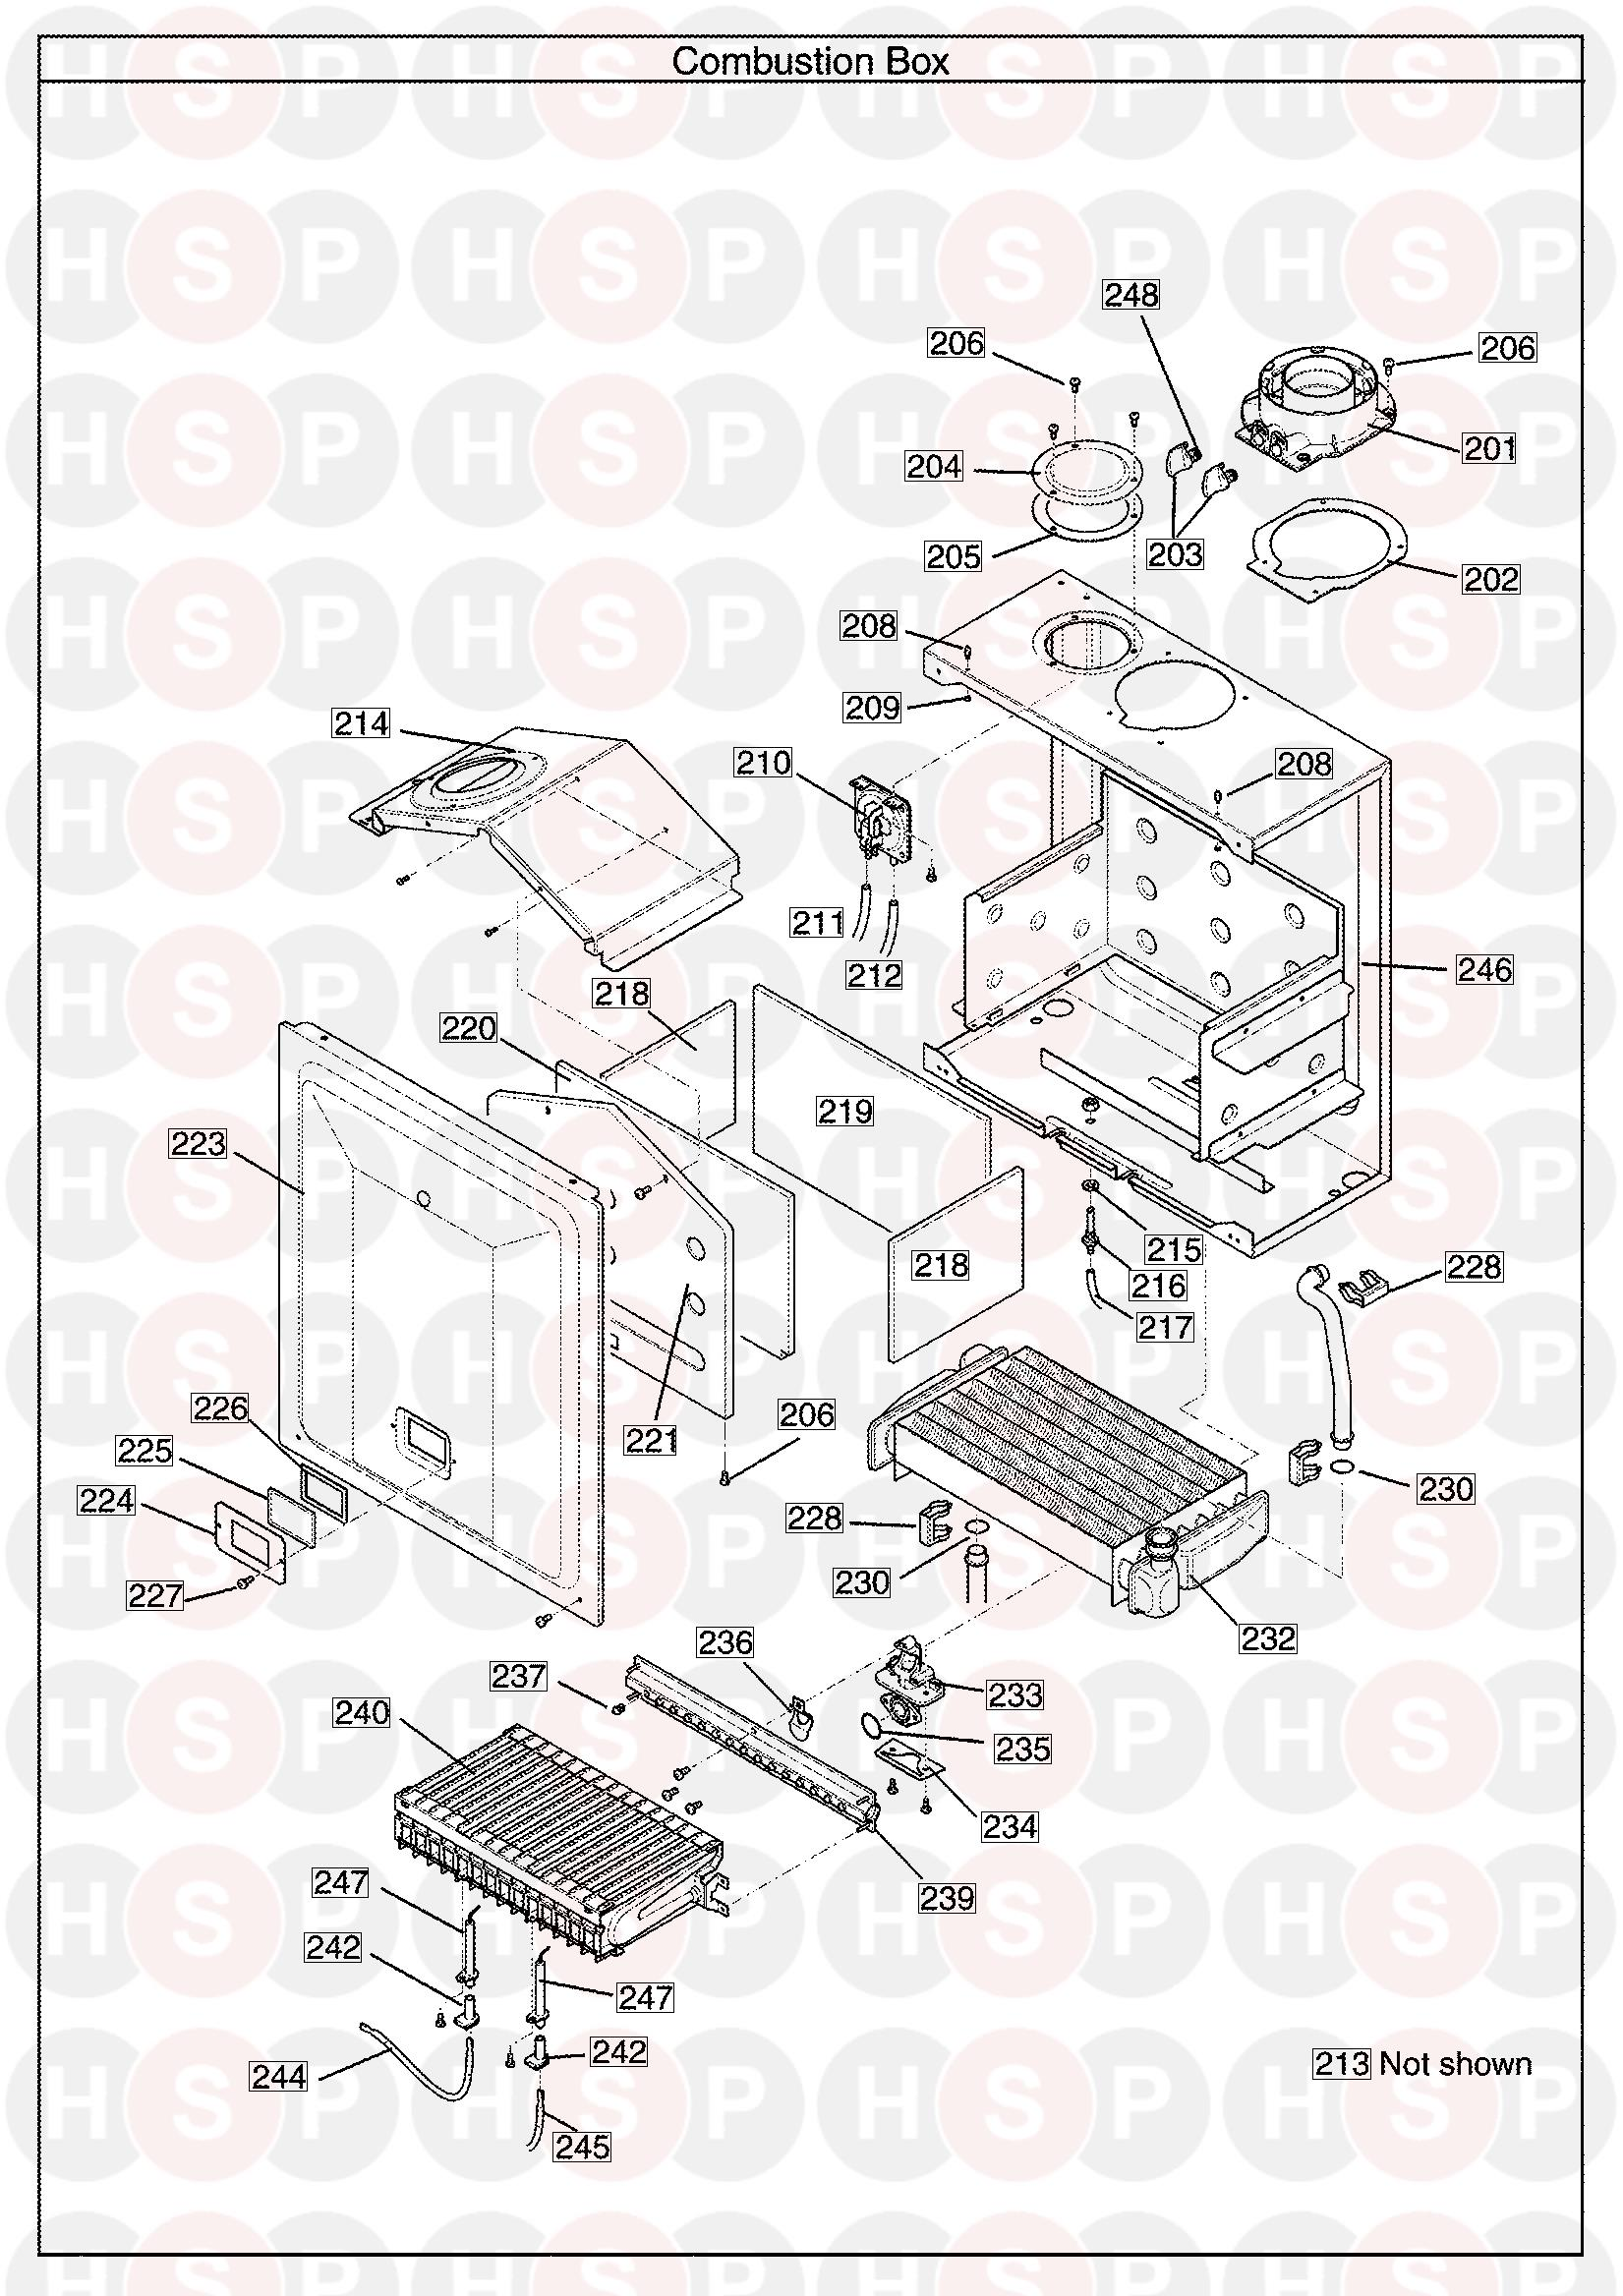 potterton performa 24 he system  combustion box  diagram